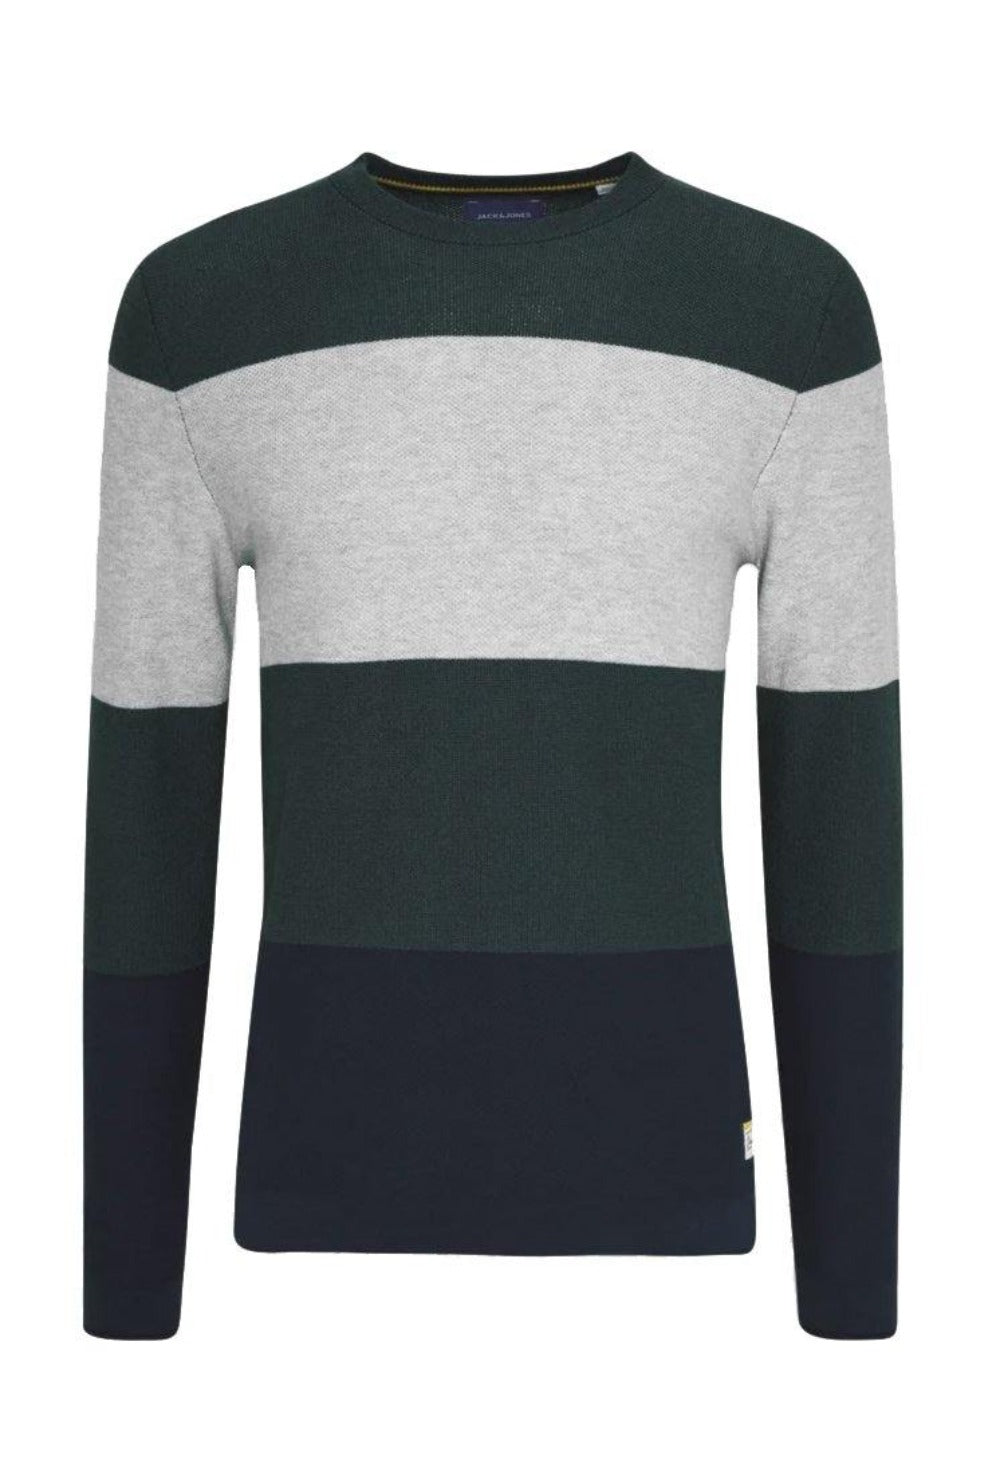 Jack & Jones FLAME Knit Crew Neck Jumper: Trekking Green - Mens - Stokedstore